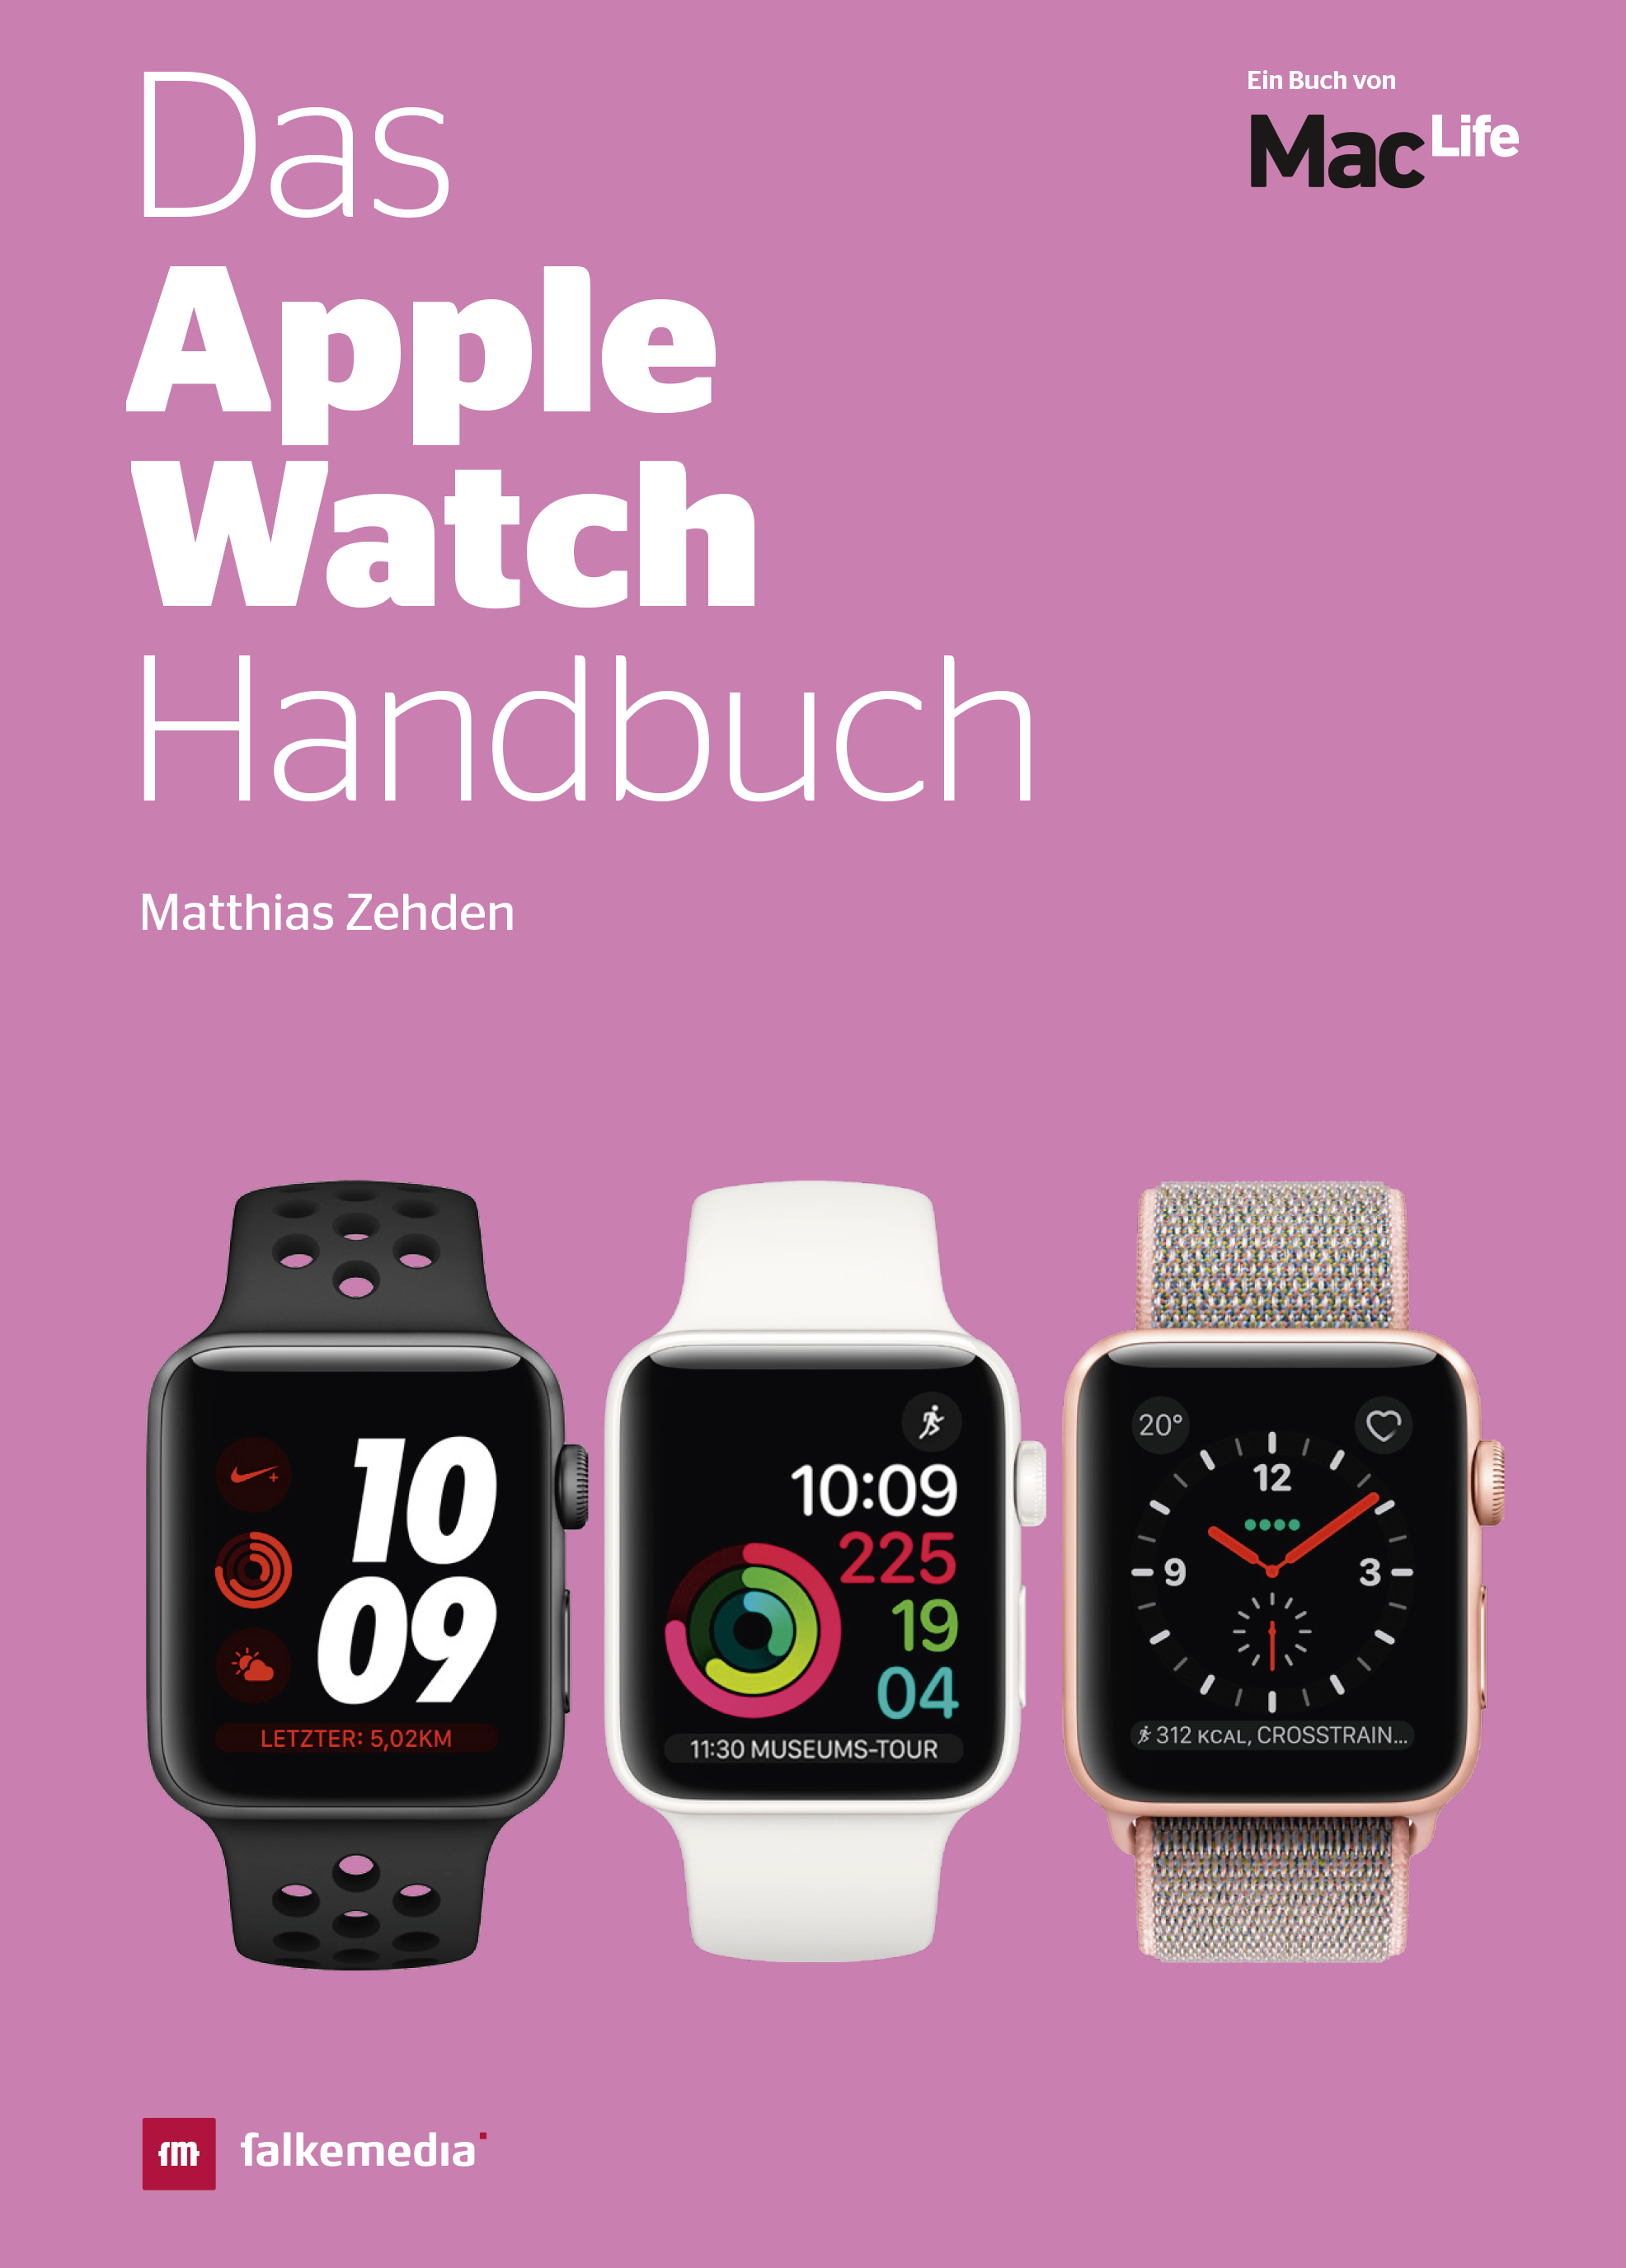 Das Apple Watch Handbuch 2019